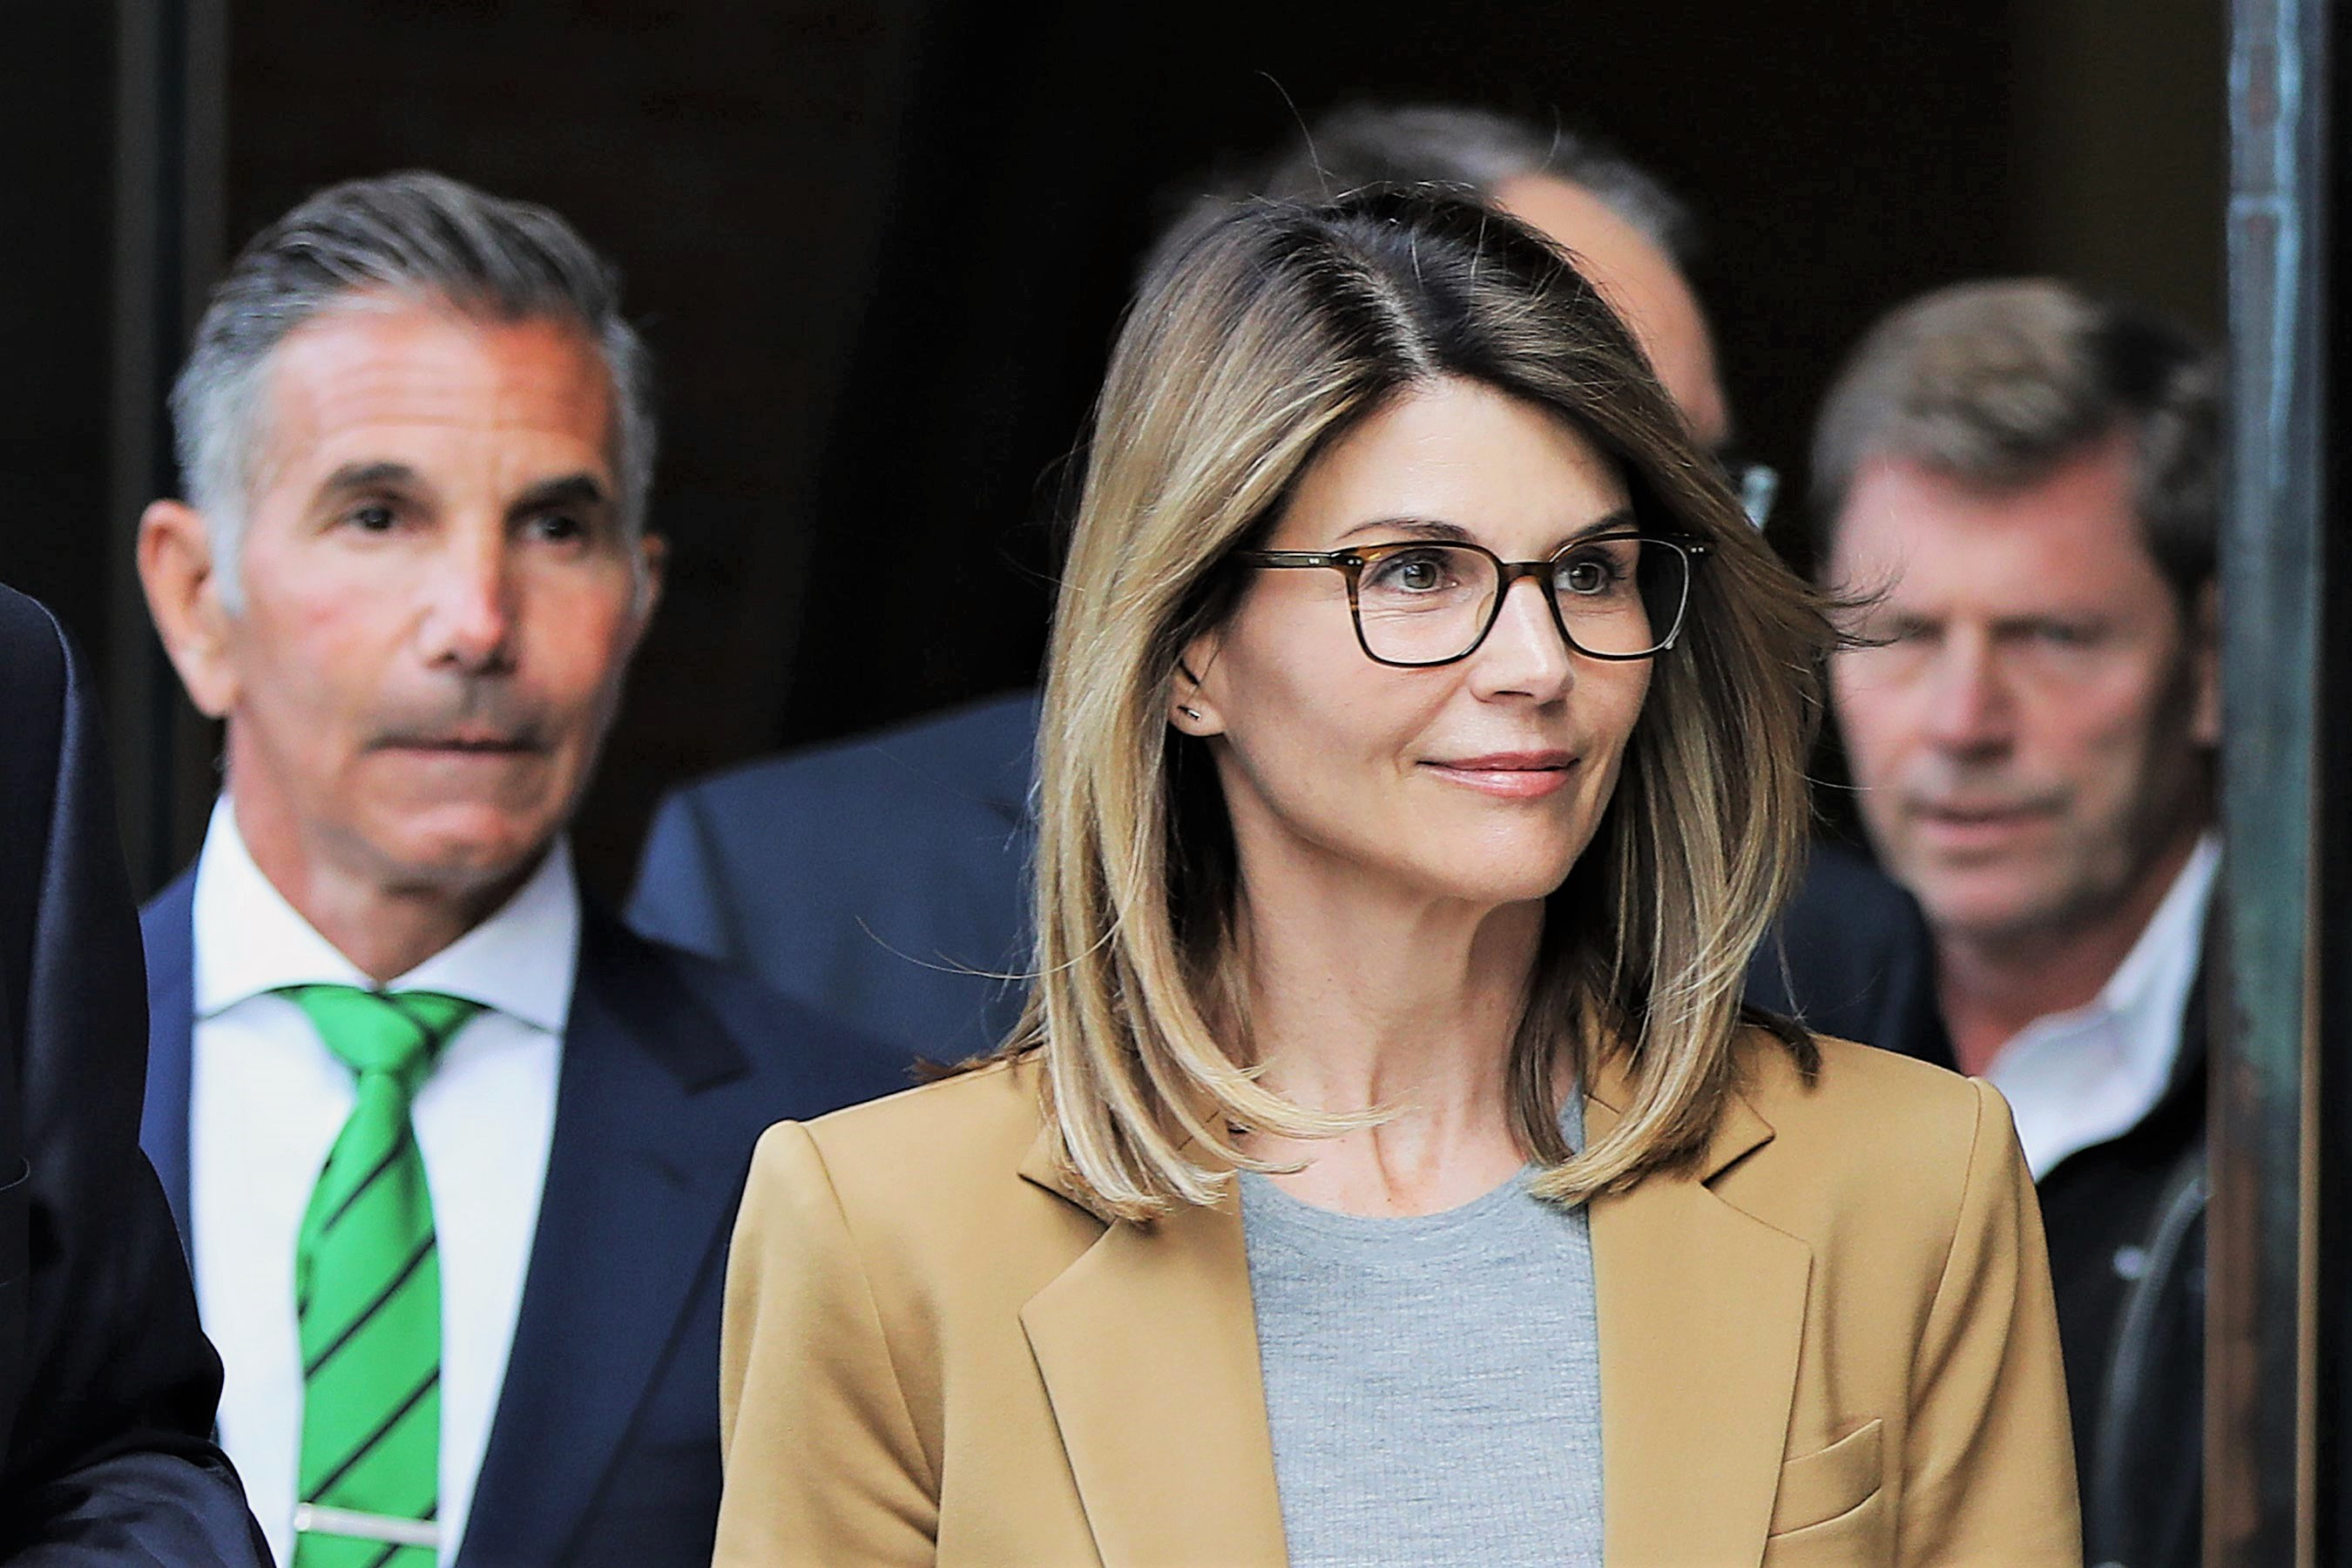 Lori Loughlin and husband Mossimo Giannulli Leaving Court For College Cheating Case